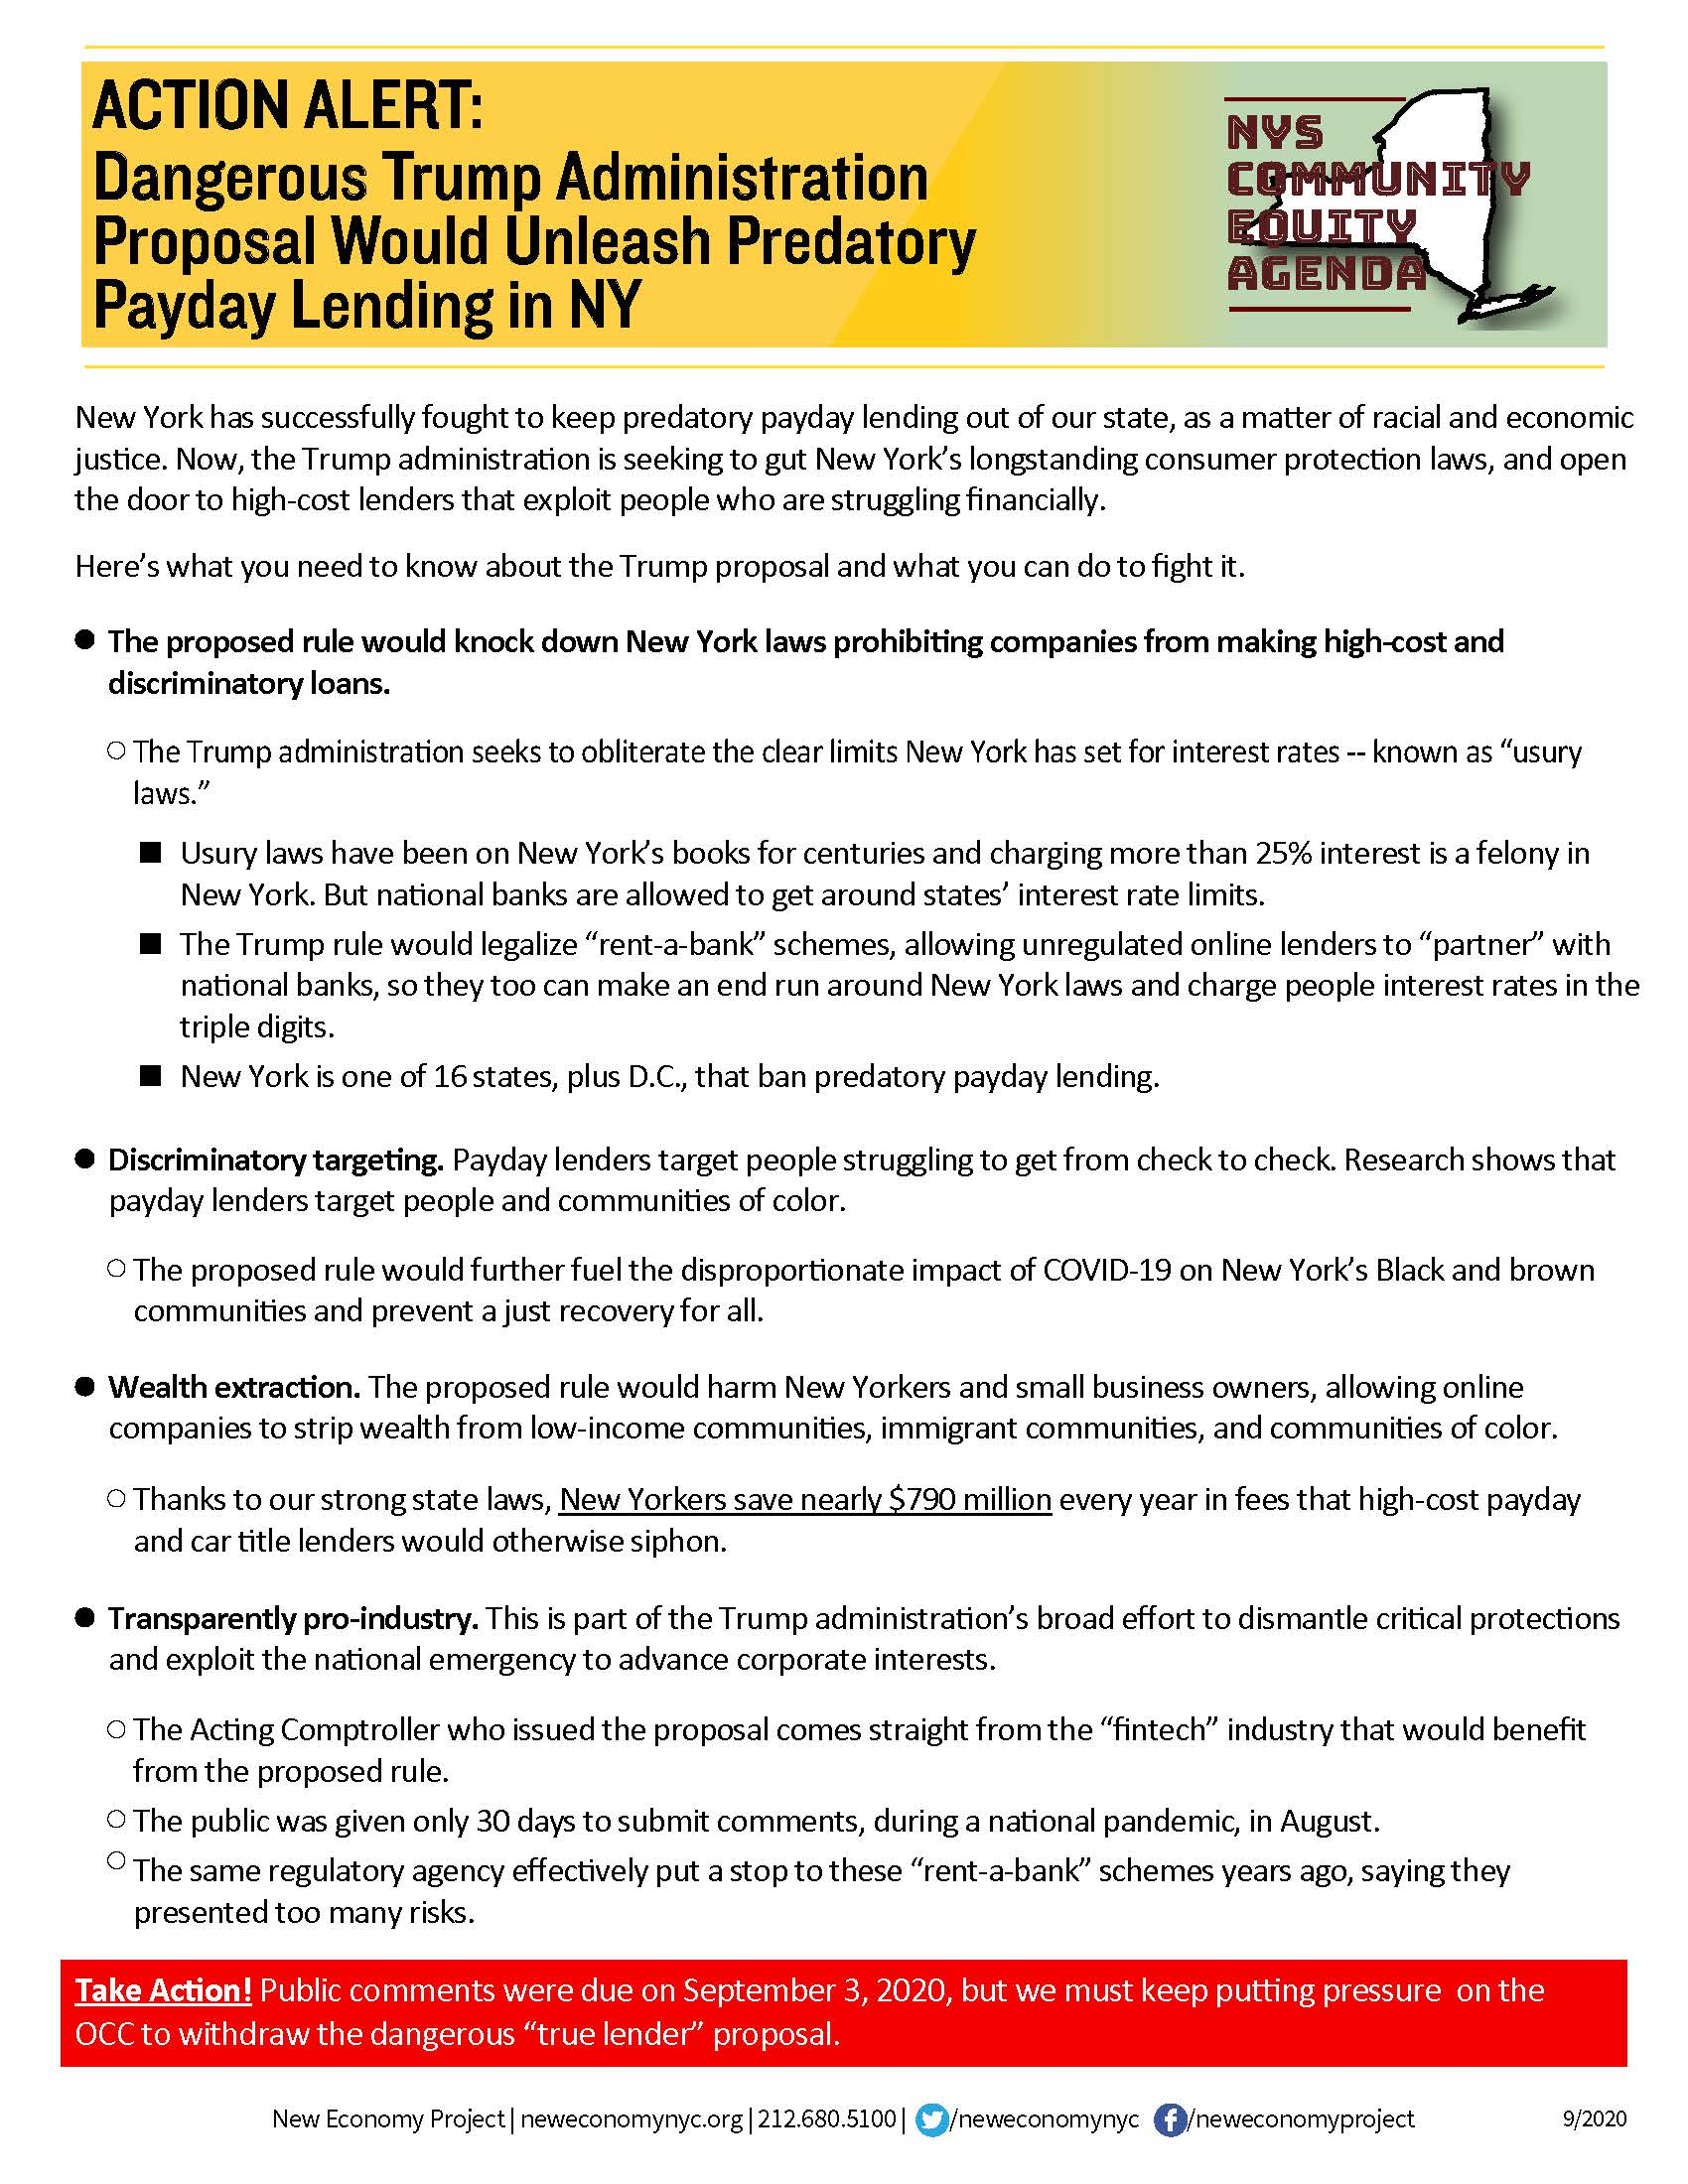 ACTION ALERT: Dangerous Trump Administration Proposal Would Unleash Predatory Payday Lending in NY